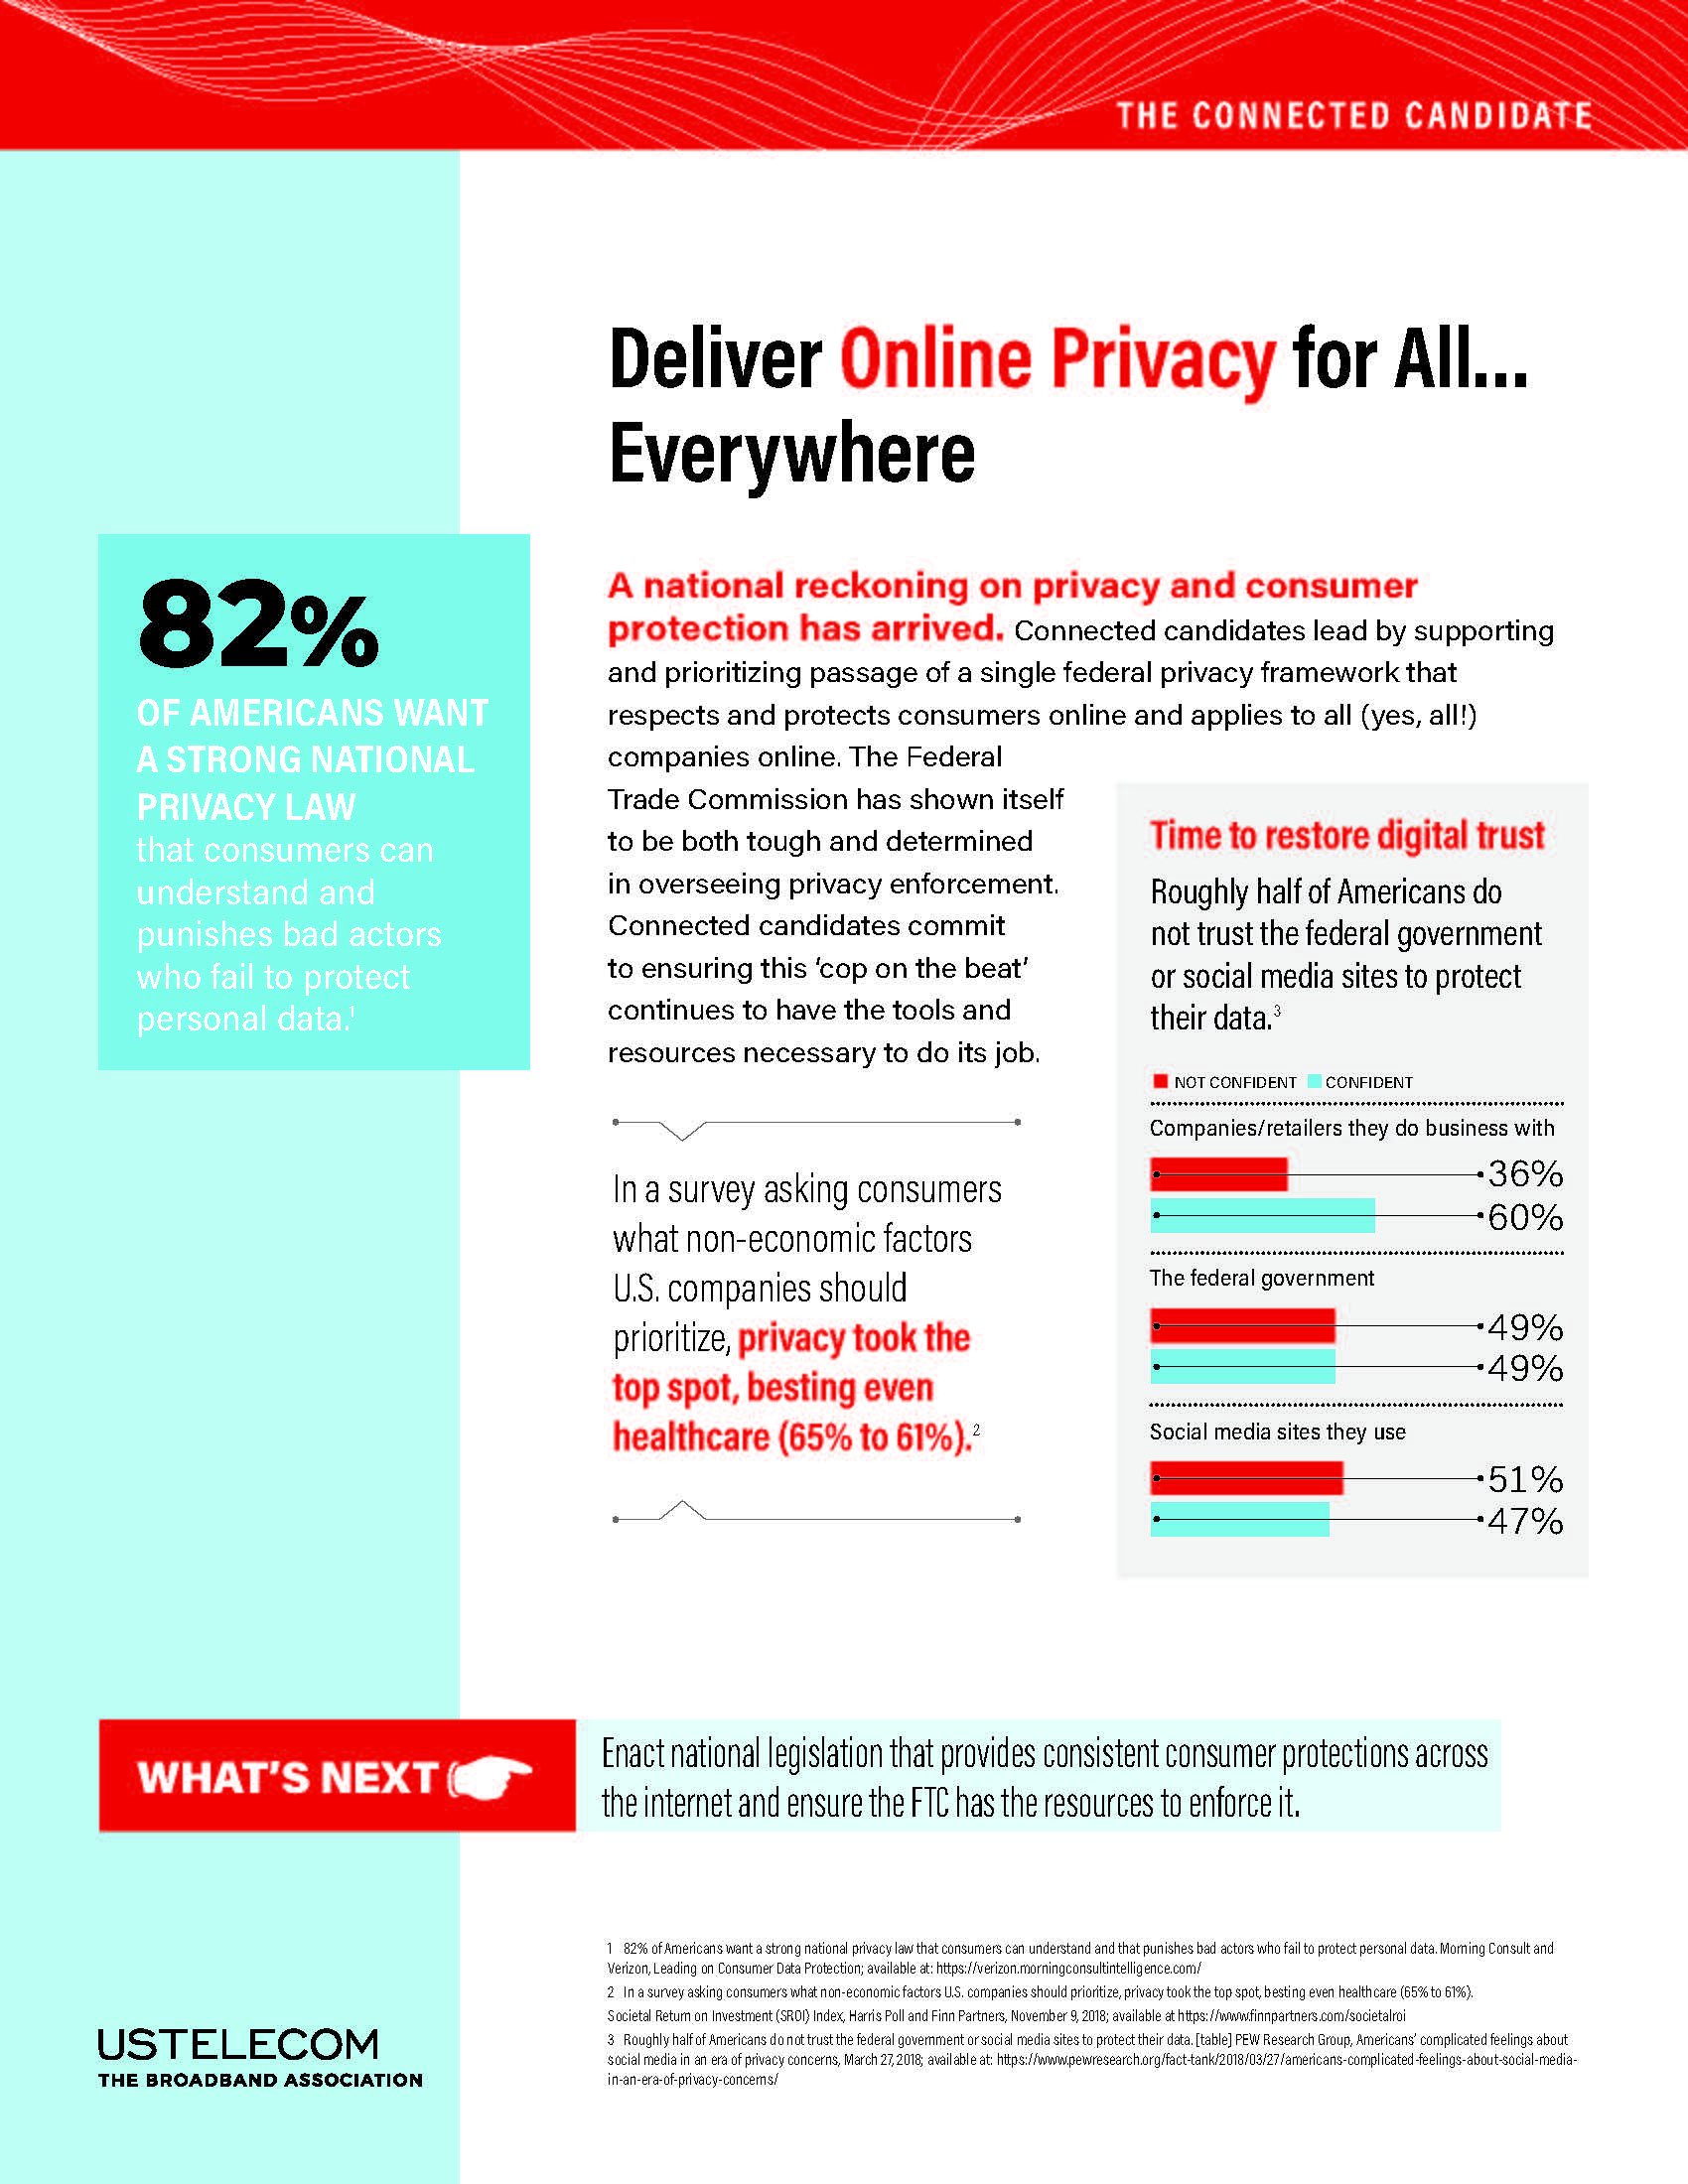 Roadmap To A Connected America: Deliver Online Privacy for All…and Everywhere